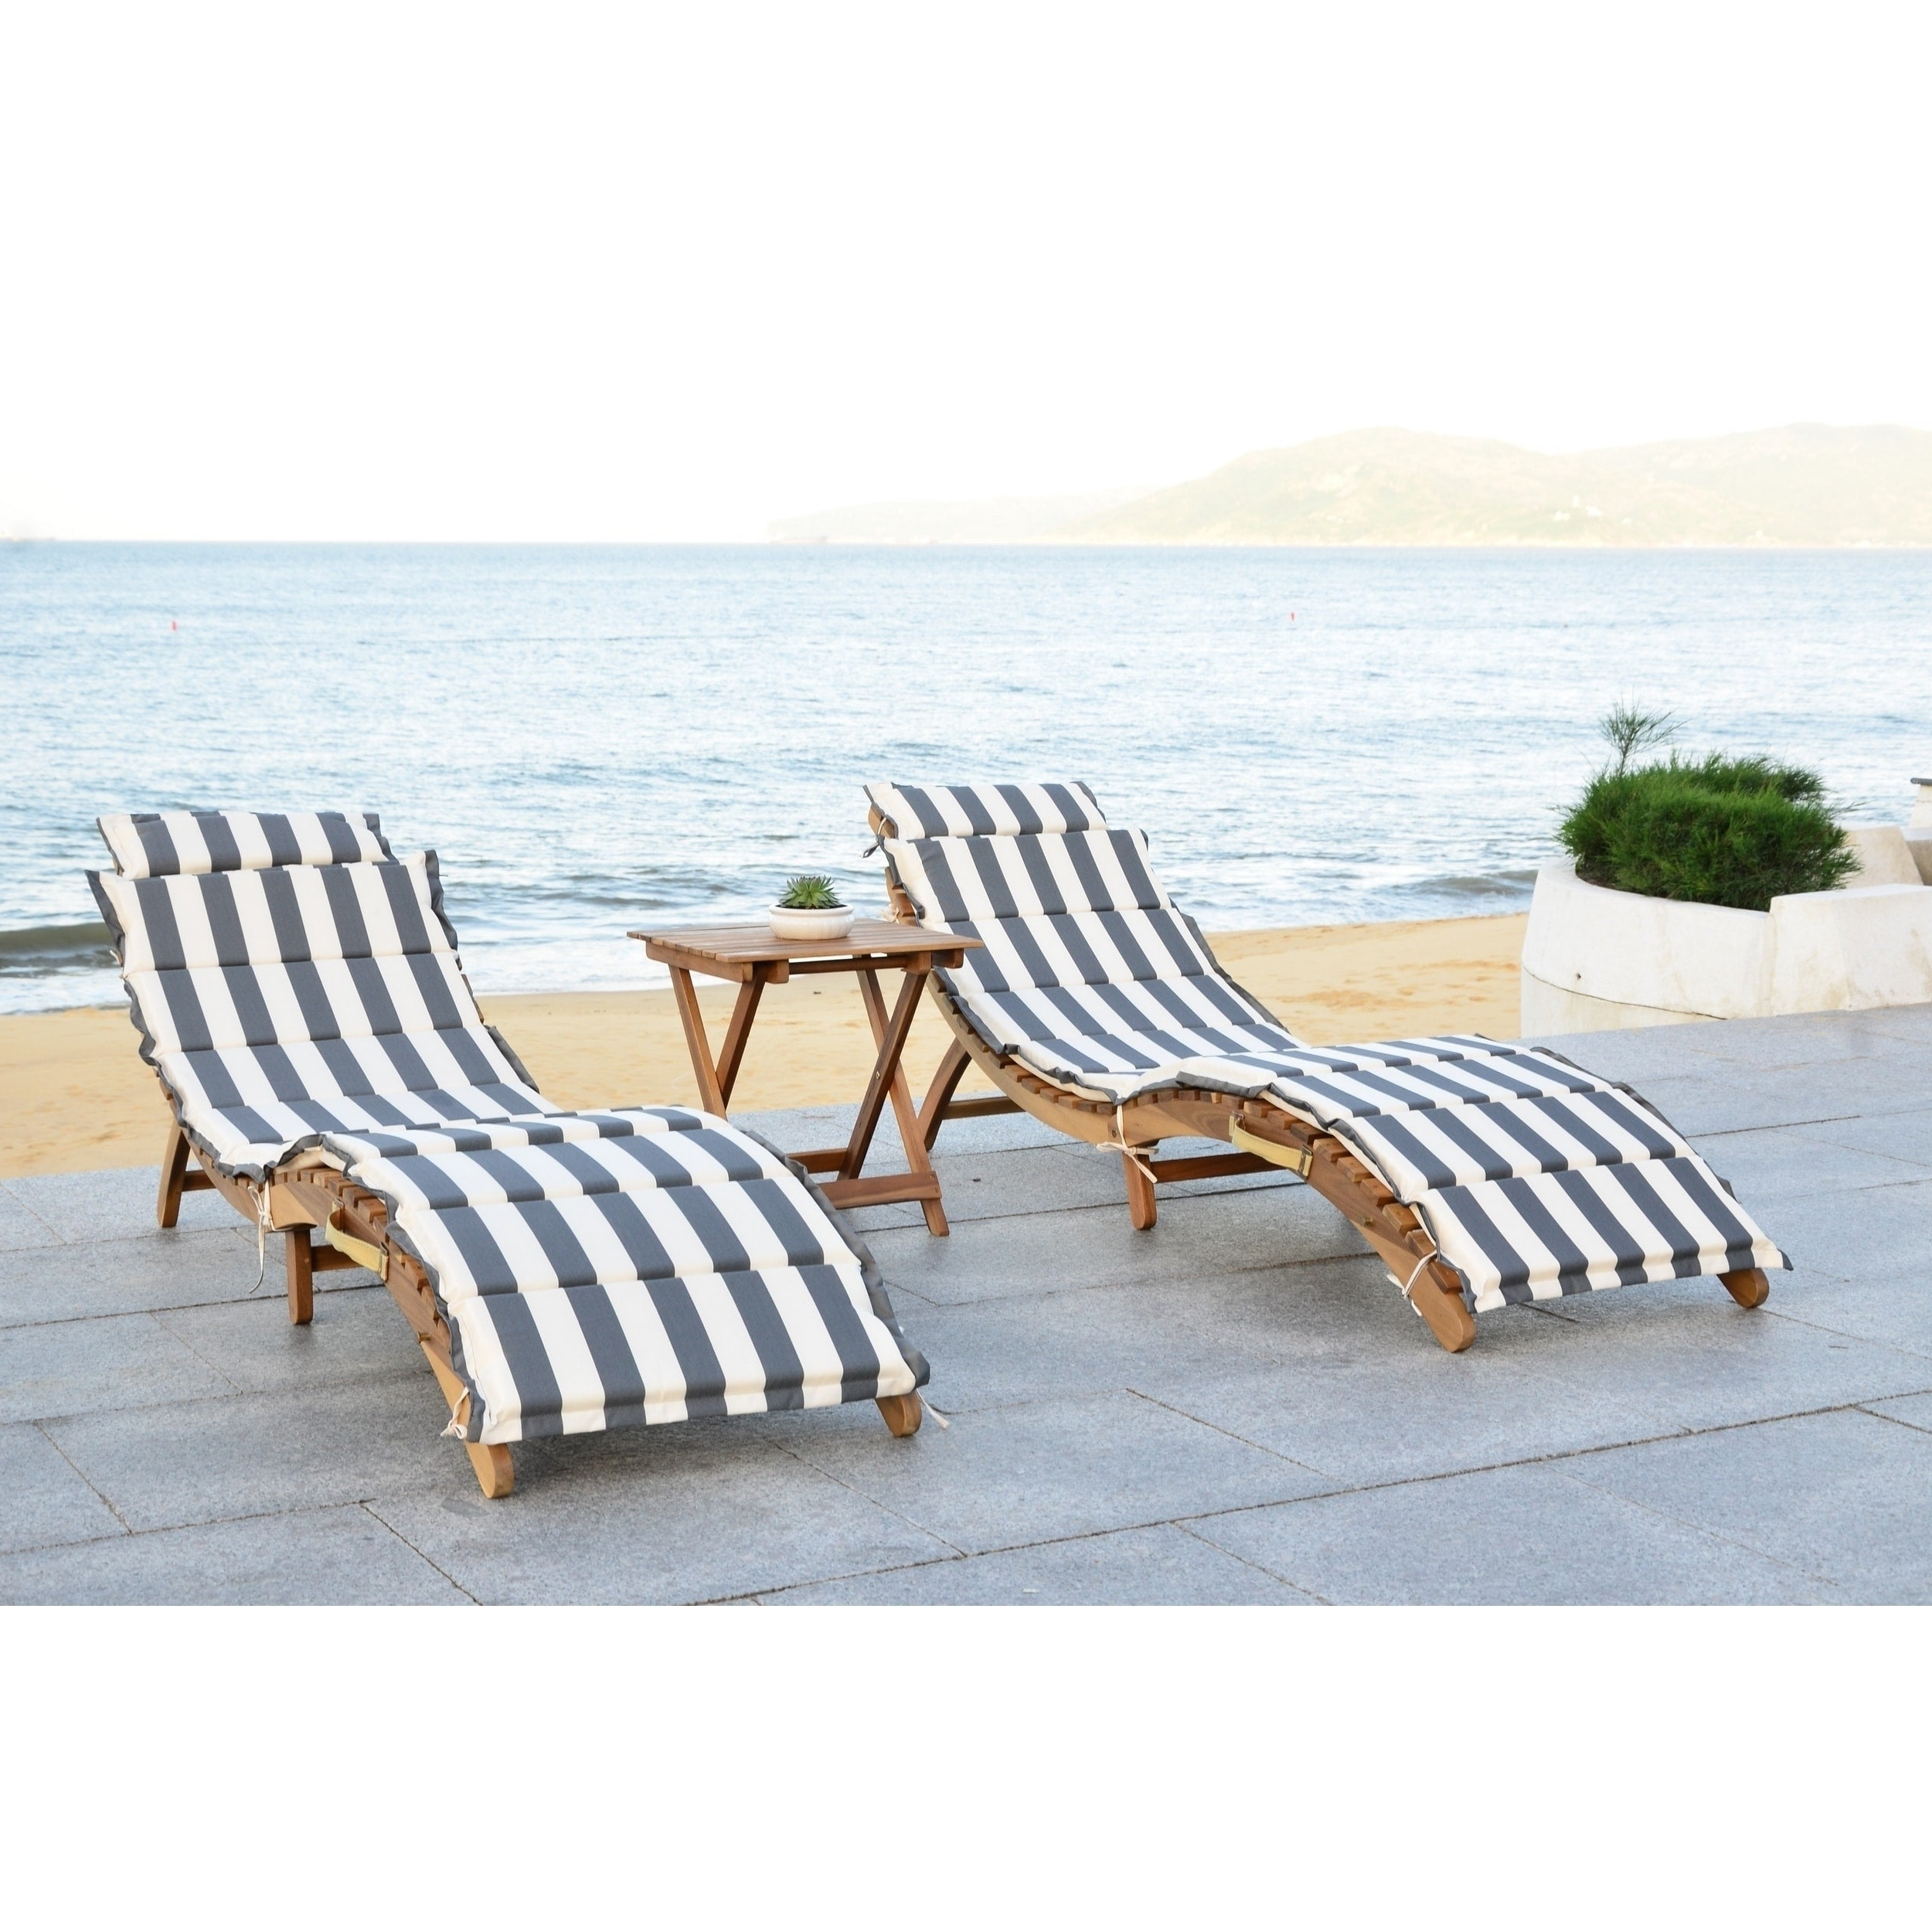 2019 Outdoor Living Pacifica Piece Lounge Sets For Safavieh Outdoor Living Pacifica Teak Brown/ Grey & White Piece Lounge Set (View 6 of 25)